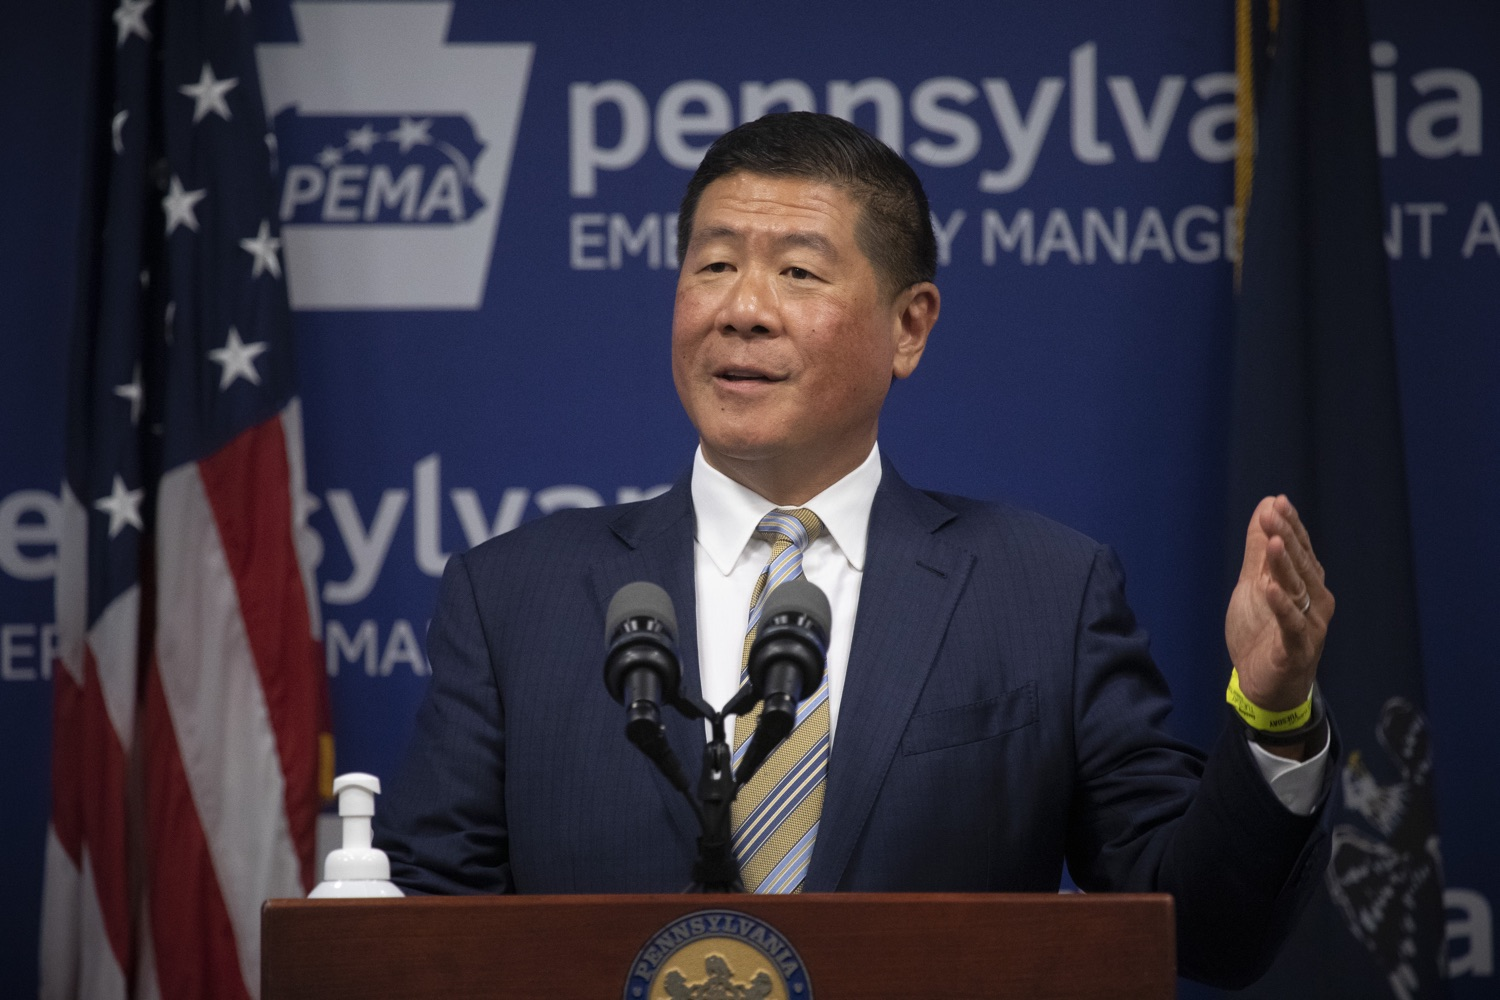 """<a href=""""https://filesource.wostreaming.net/commonwealthofpa/photo/18201_gov_orasure_dz_006.jpg"""" target=""""_blank"""">⇣Download Photo<br></a>OraSure President & CEO Dr. Stephen Tang speaking to the press.  Today, Governor Tom Wolf announced that OraSure Technologies Inc., a developer and manufacturer of rapid diagnostic tests, collection and stabilization devices headquartered in Northampton County, will expand its manufacturing operations in the Lehigh Valley, creating 177 new, full-time jobs and retaining 233 jobs.  Harrisburg, PA  August 11, 2020"""